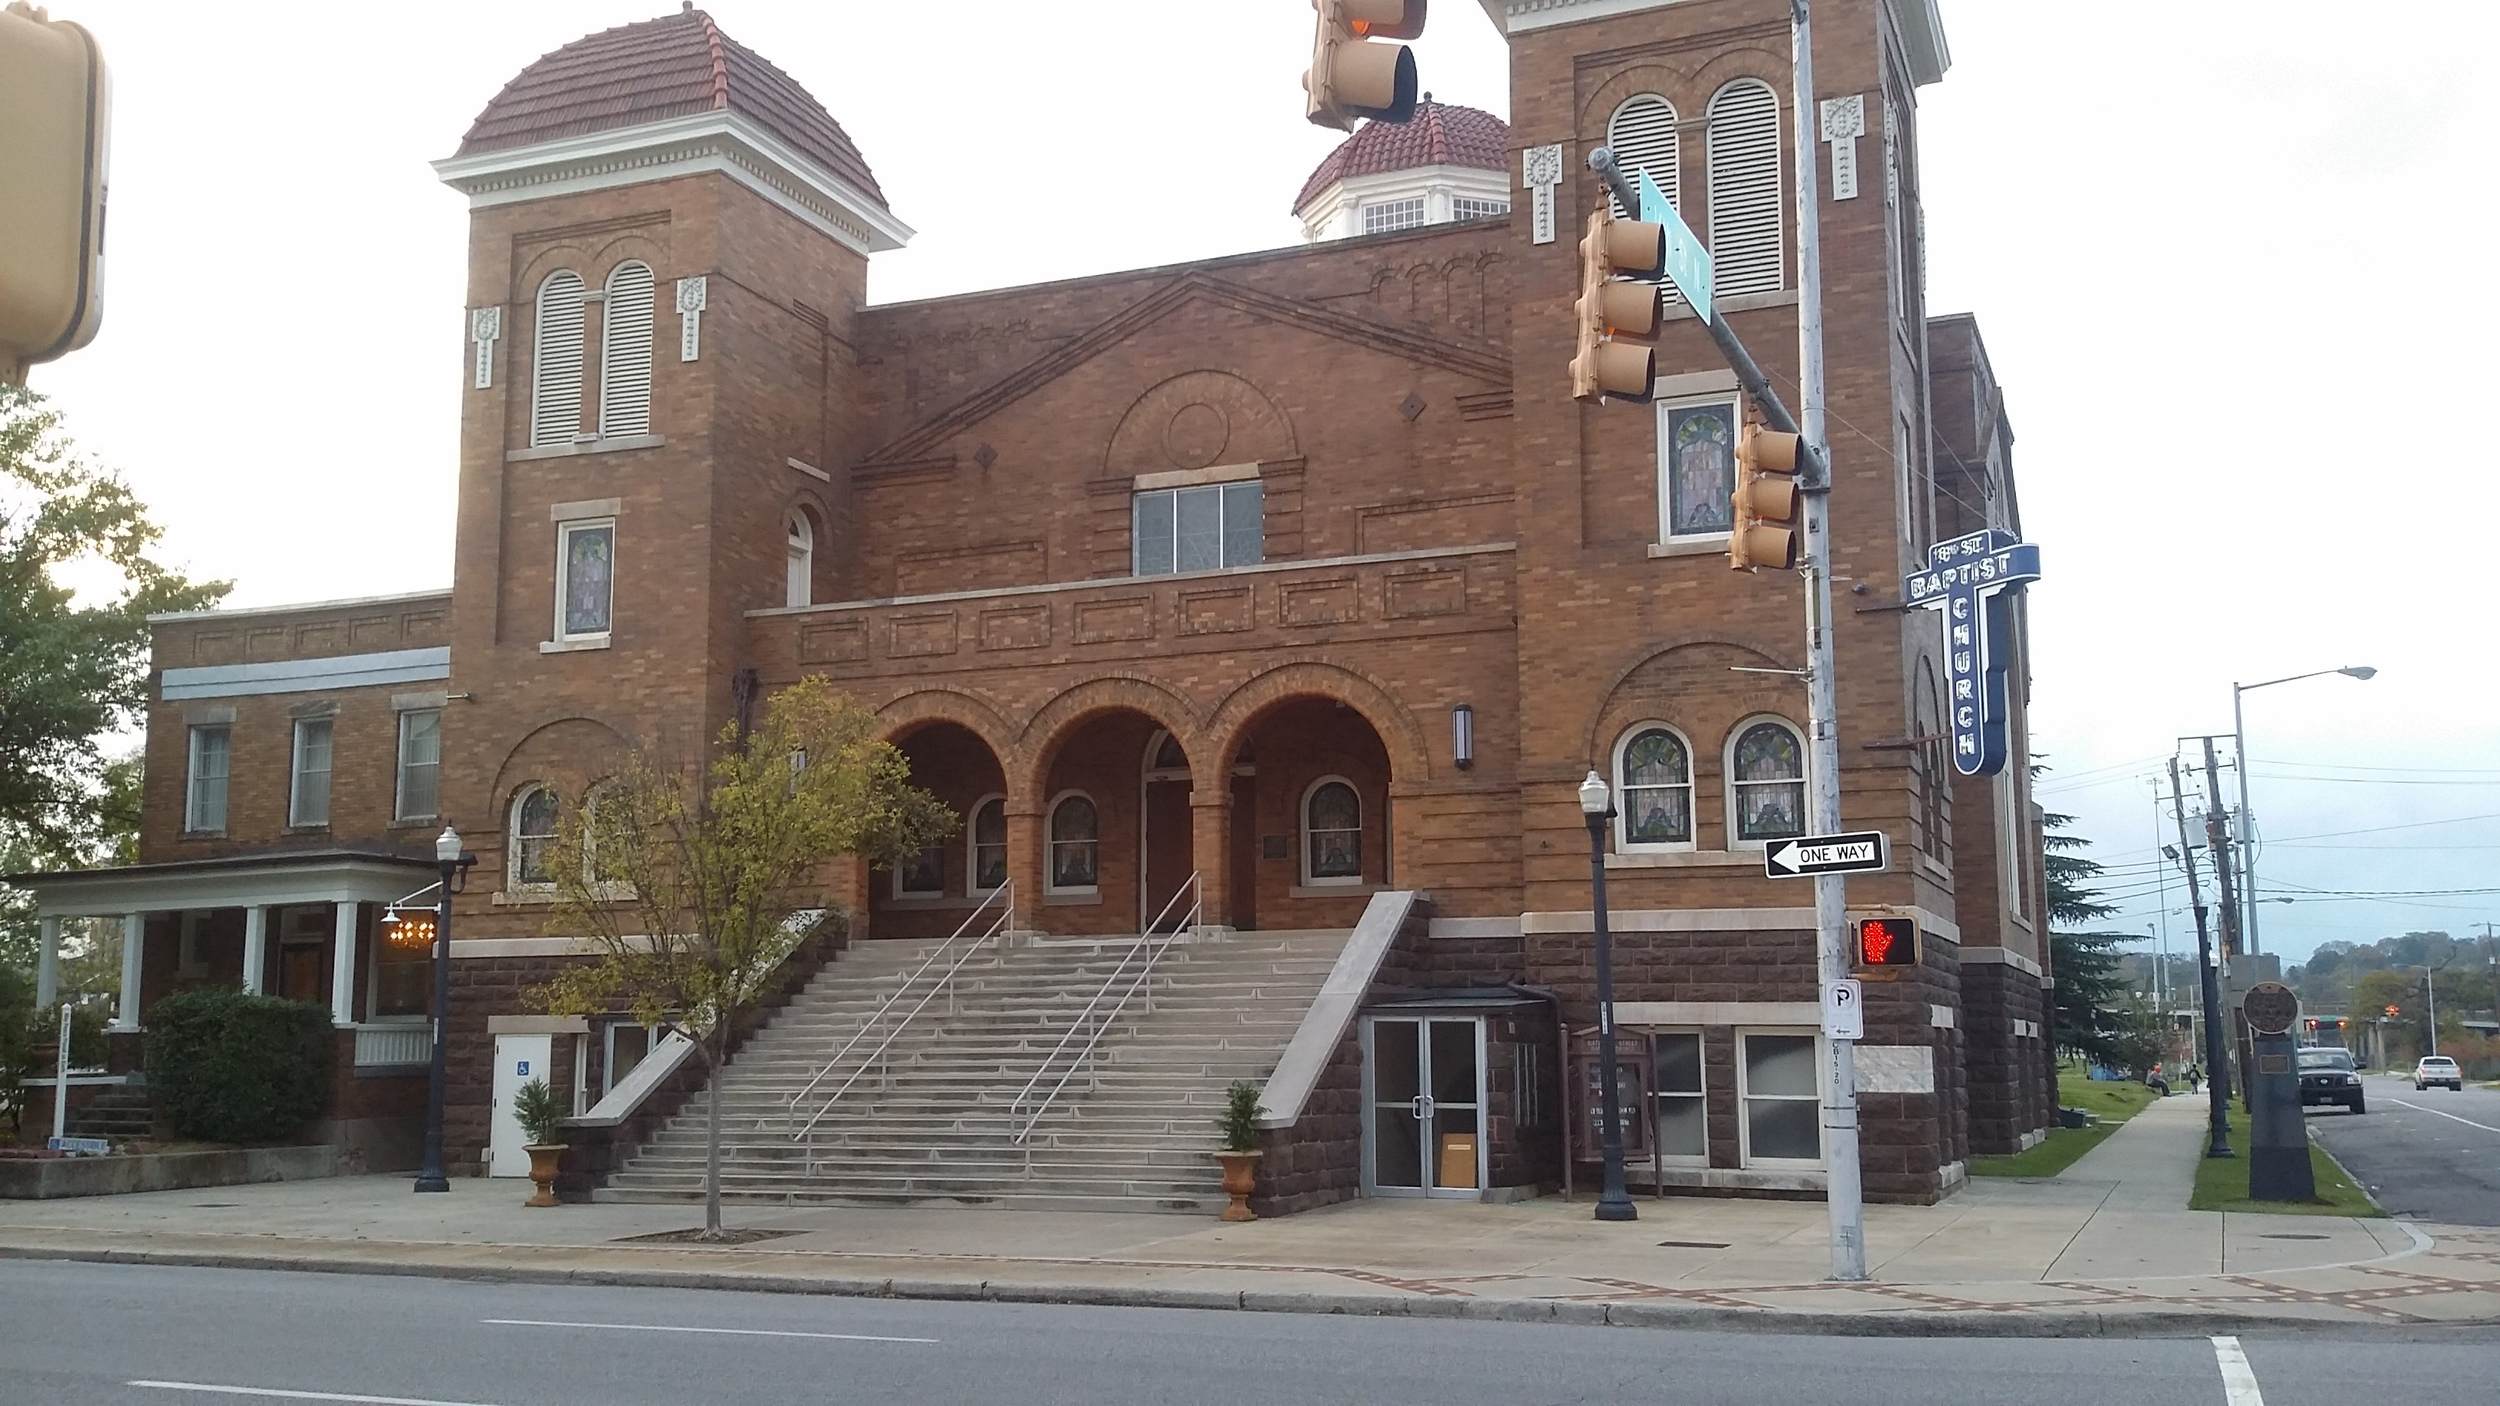 16th Street Baptist Church - Photos by Me